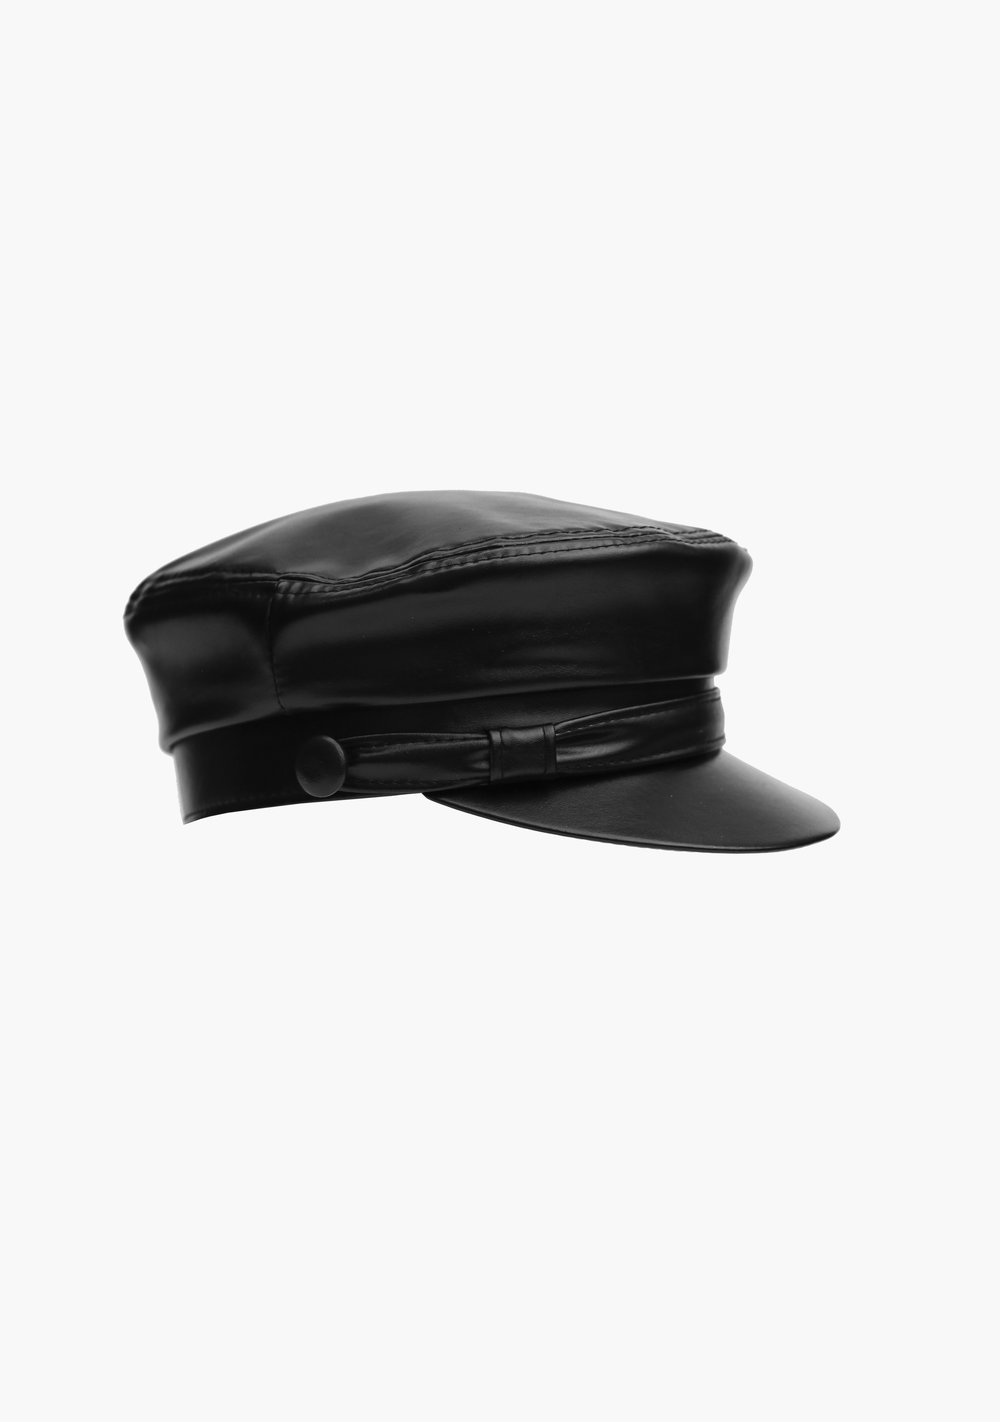 66thelabel_leather_cap.jpg